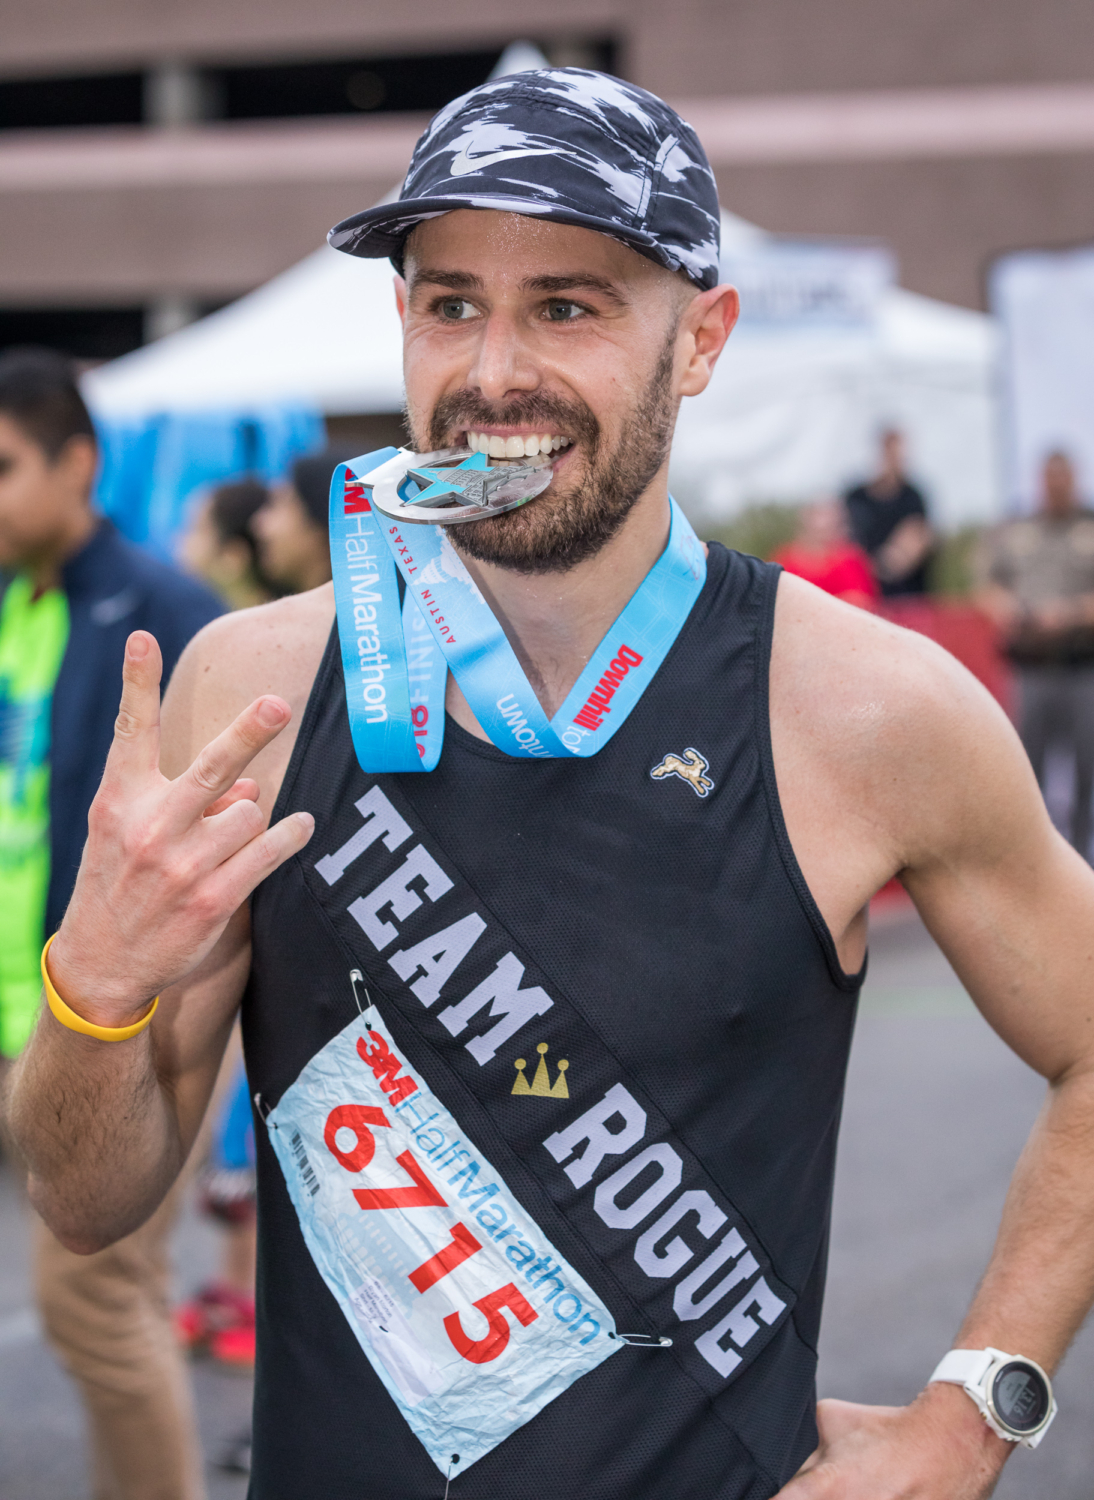 Bryan Morton is one of the elites running the 2019 3M Half Marathon presented by Under Armour.